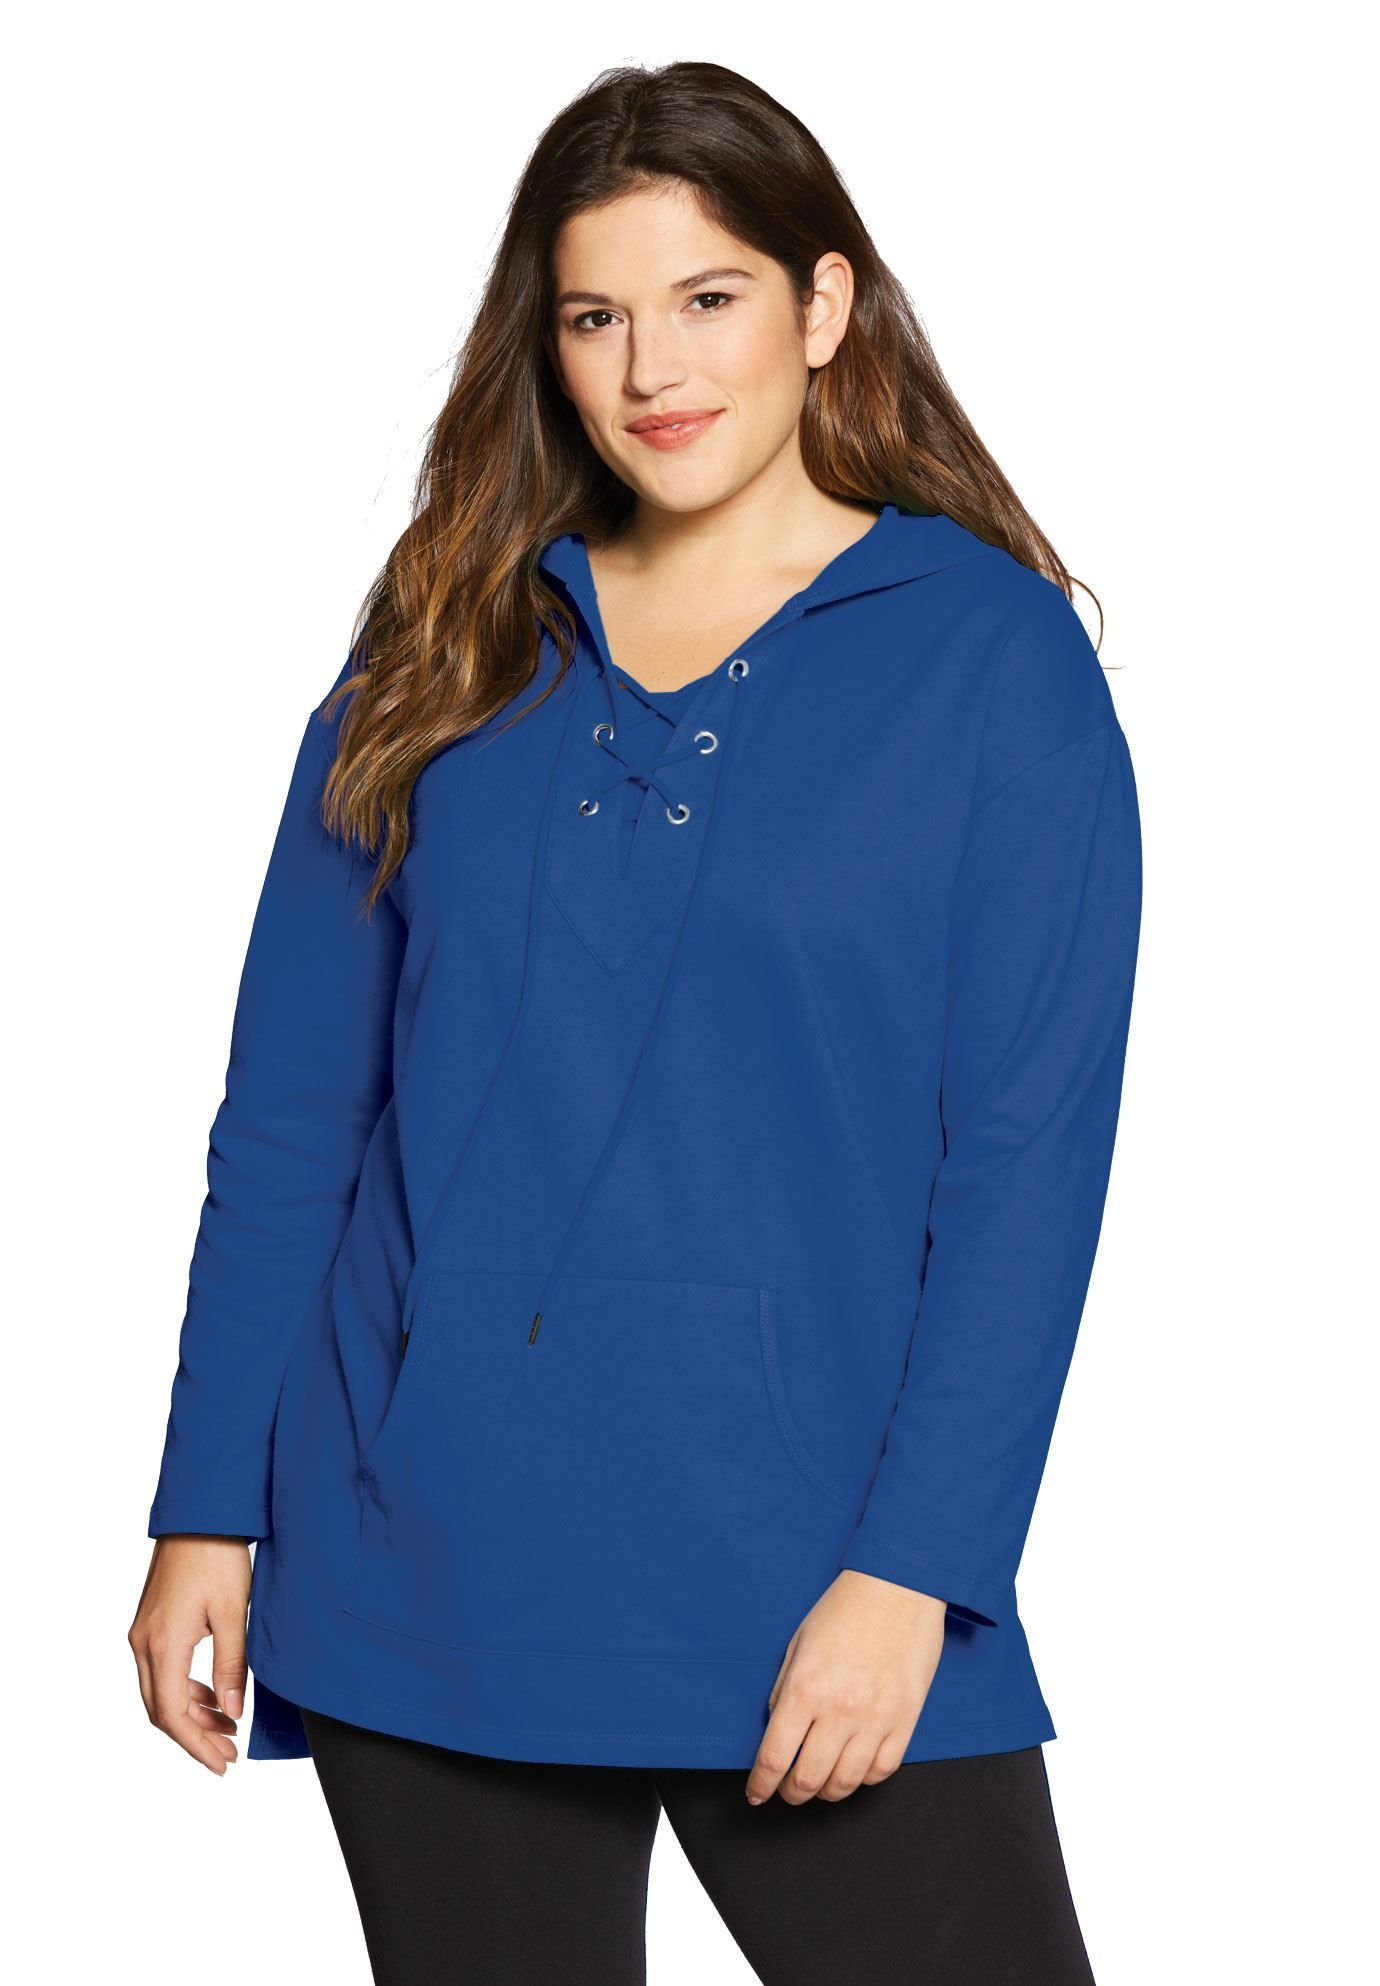 d9968c3a643 Lace-up hooded sweatshirt tunic - Women s Plus Size Clothing ...